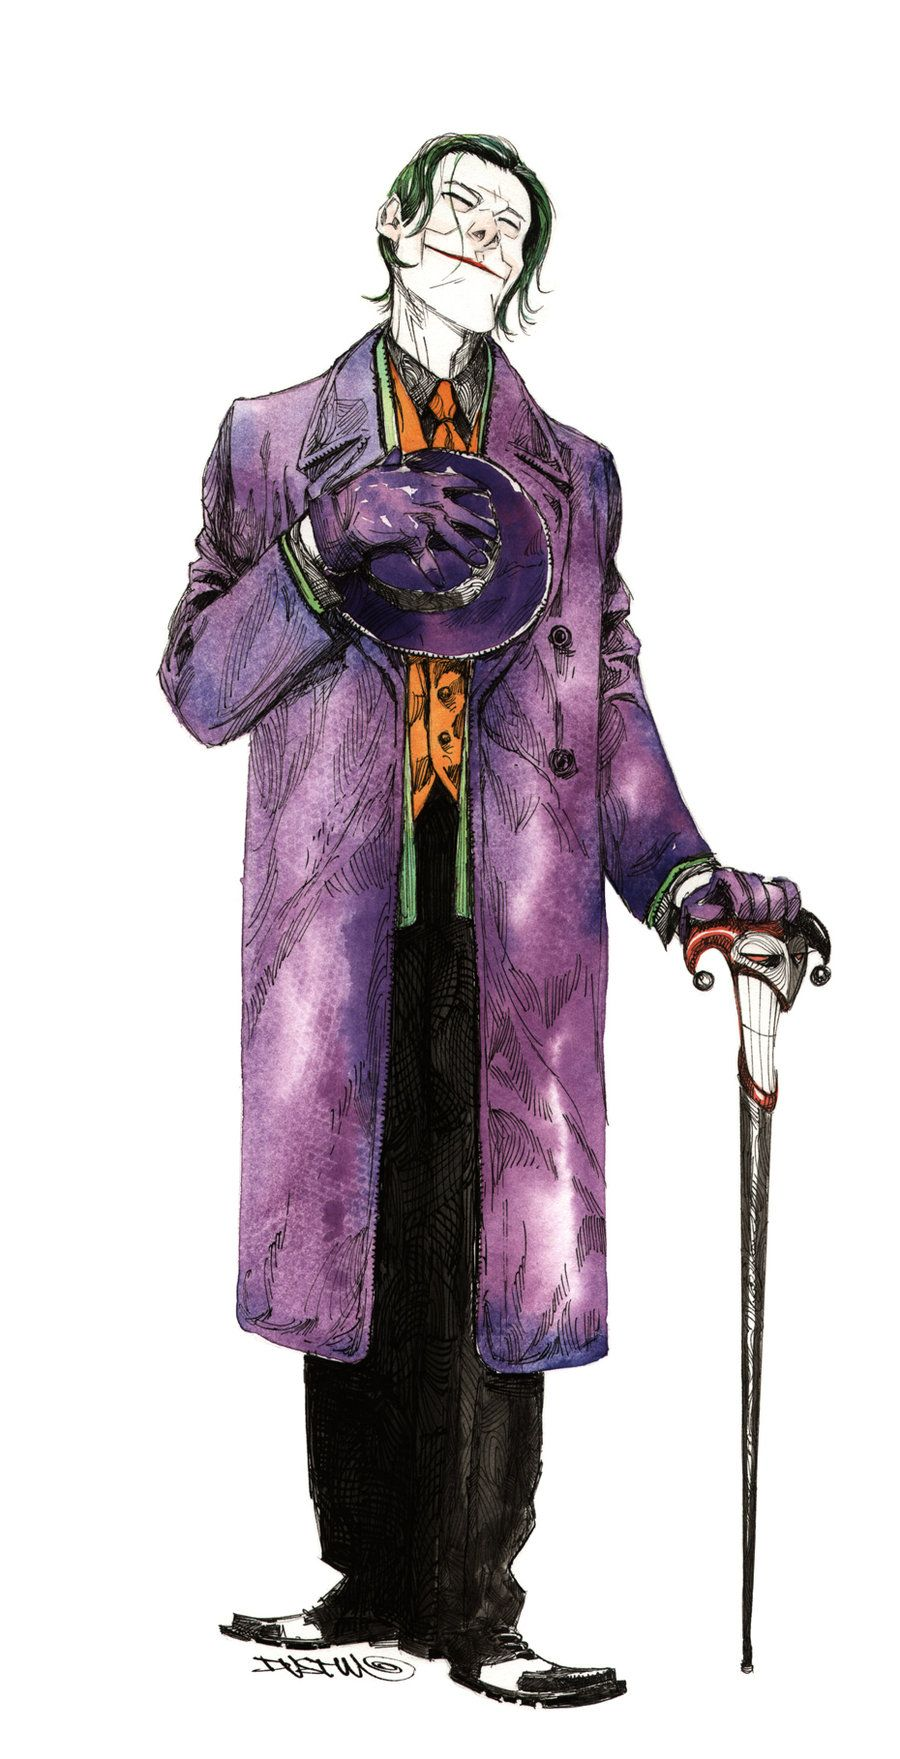 Many great artists have drawn the Joker of the years, but